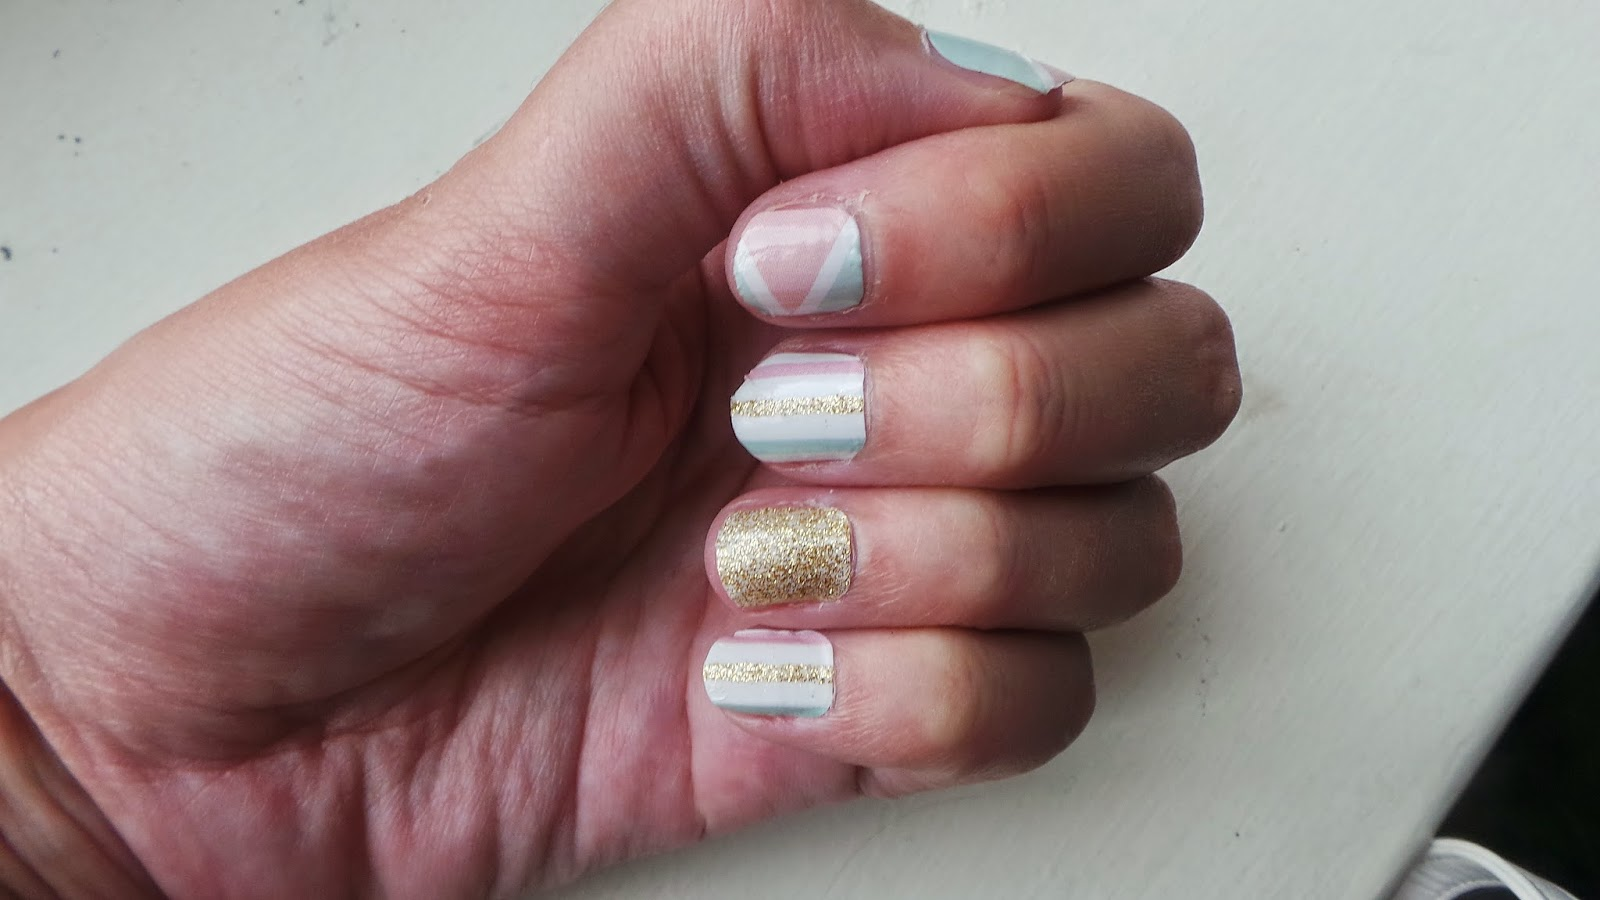 Ramblings of a Makeup and Shopping Addict: Candies Nail Sticker Review